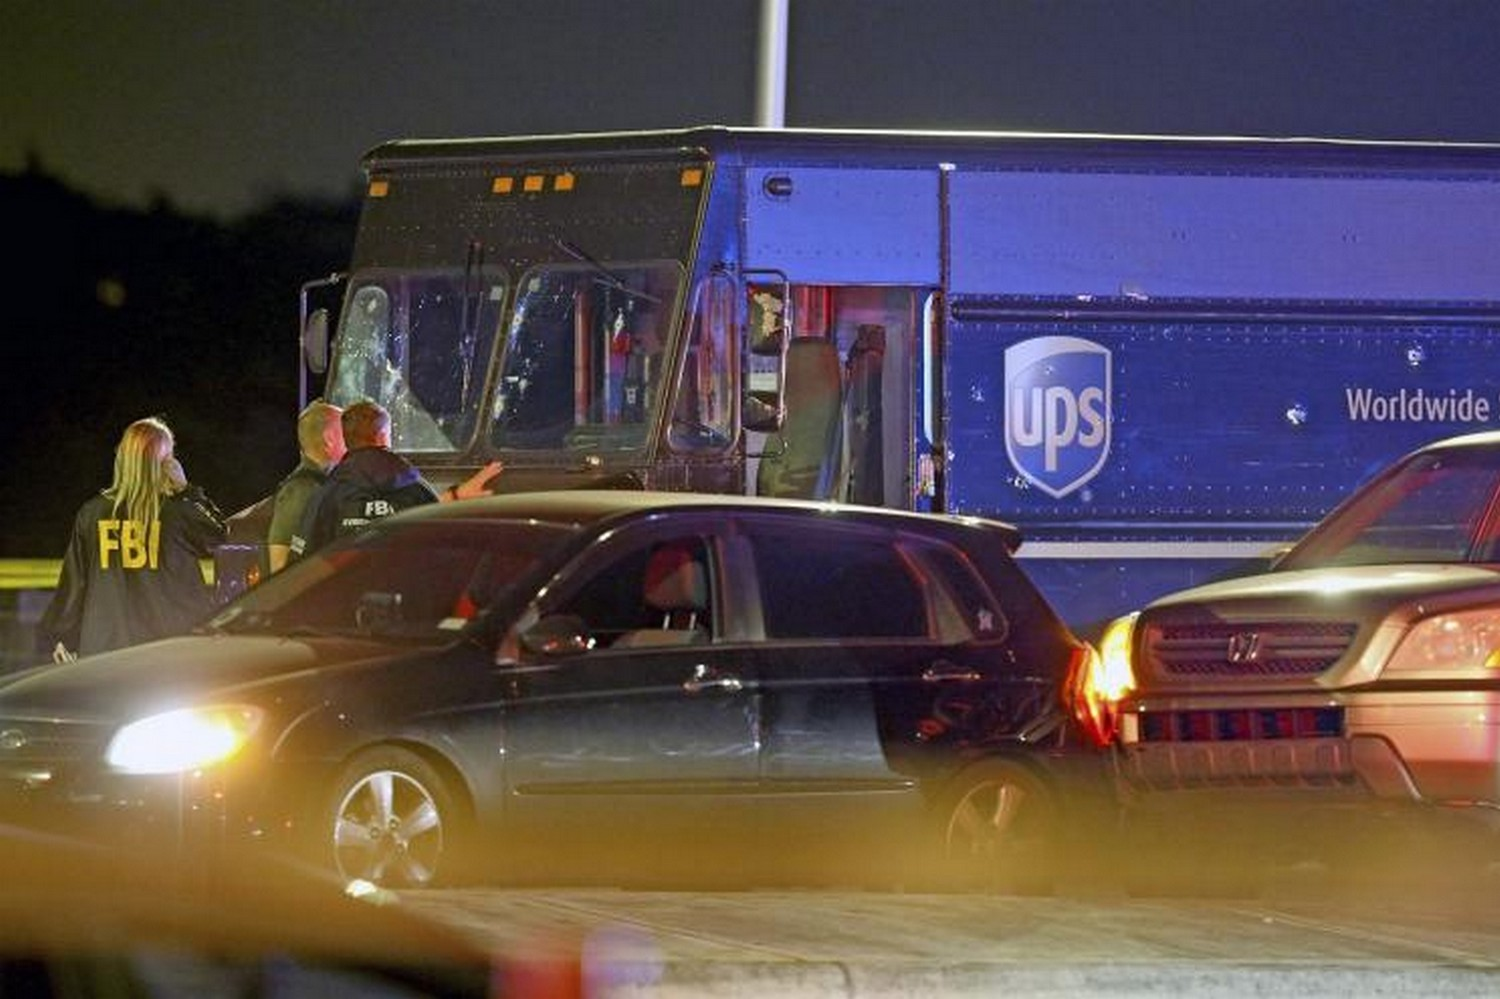 Law enforcement officers stand near a UPS vehicle that appears to be part of the crime scene where four people were killed in Miramar, near Miami, on Thursday after robbers led police on a chase that ended in gunfire at a busy Florida intersection during rush hour.(Photo: Miami Herald/AP)